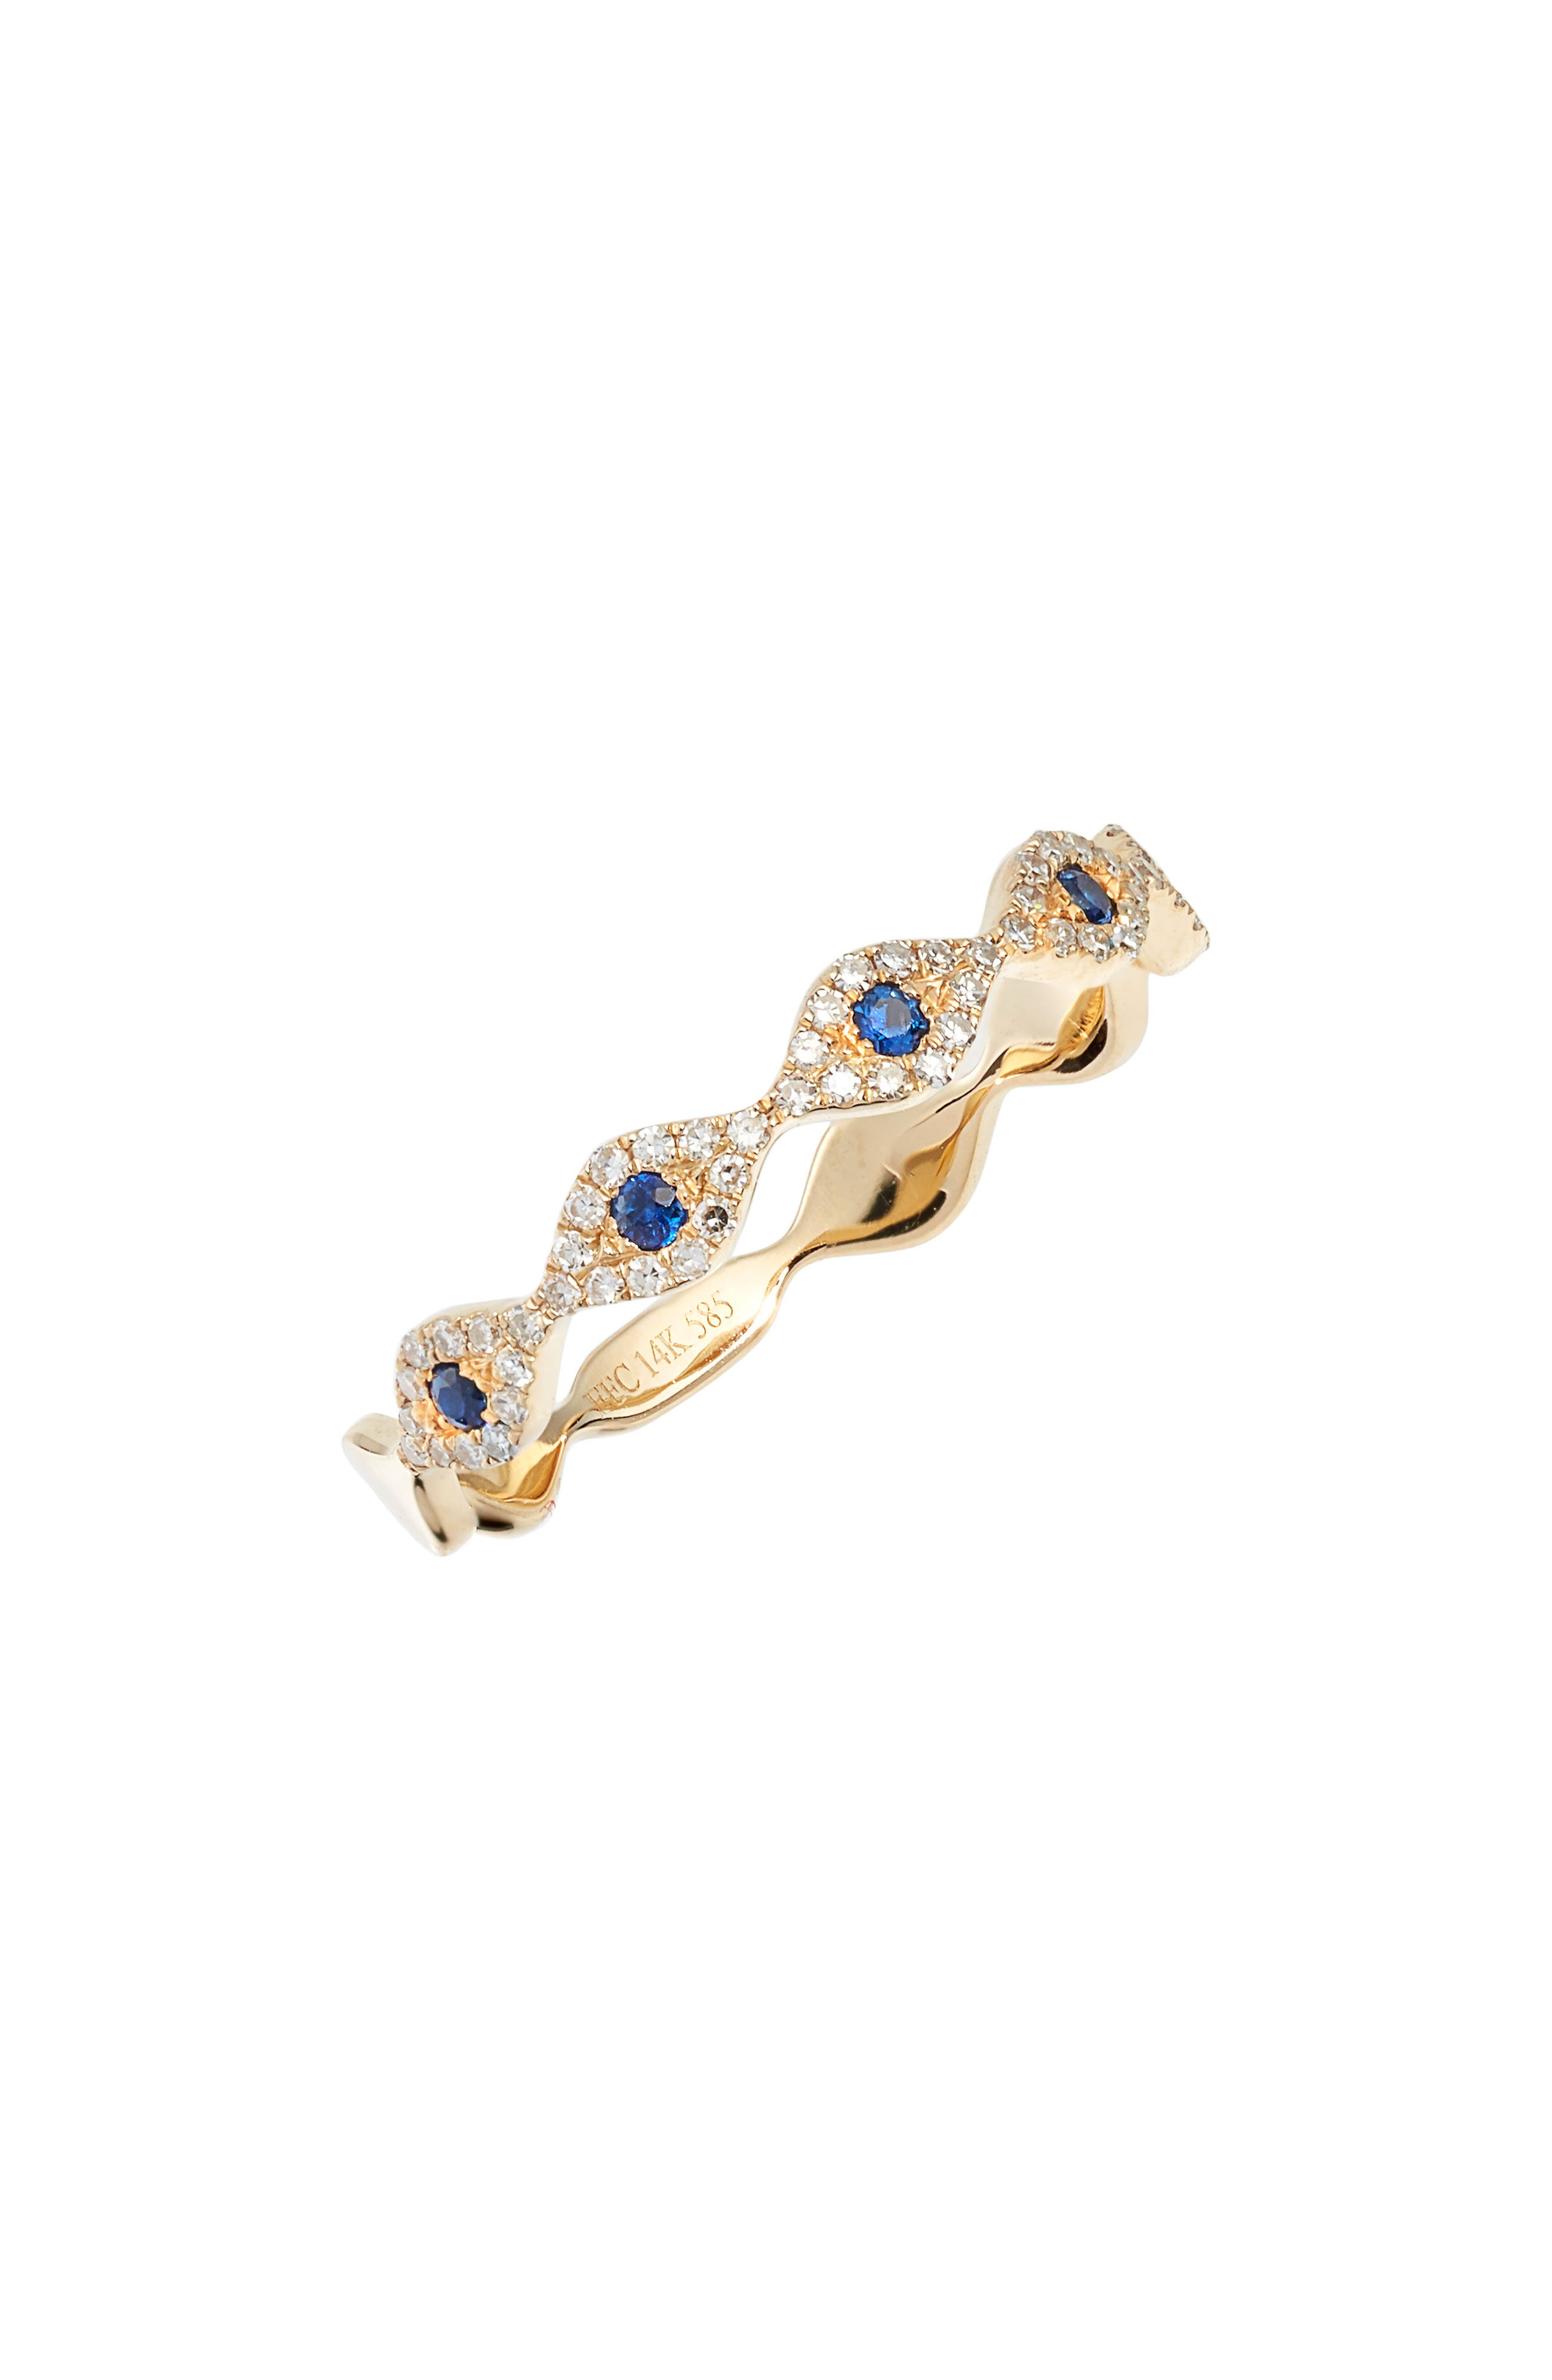 EF COLLECTION, Evil Eye Diamond & Sapphire Stack Ring, Main thumbnail 1, color, YELLOW GOLD/ BLUE SAPPHIRE